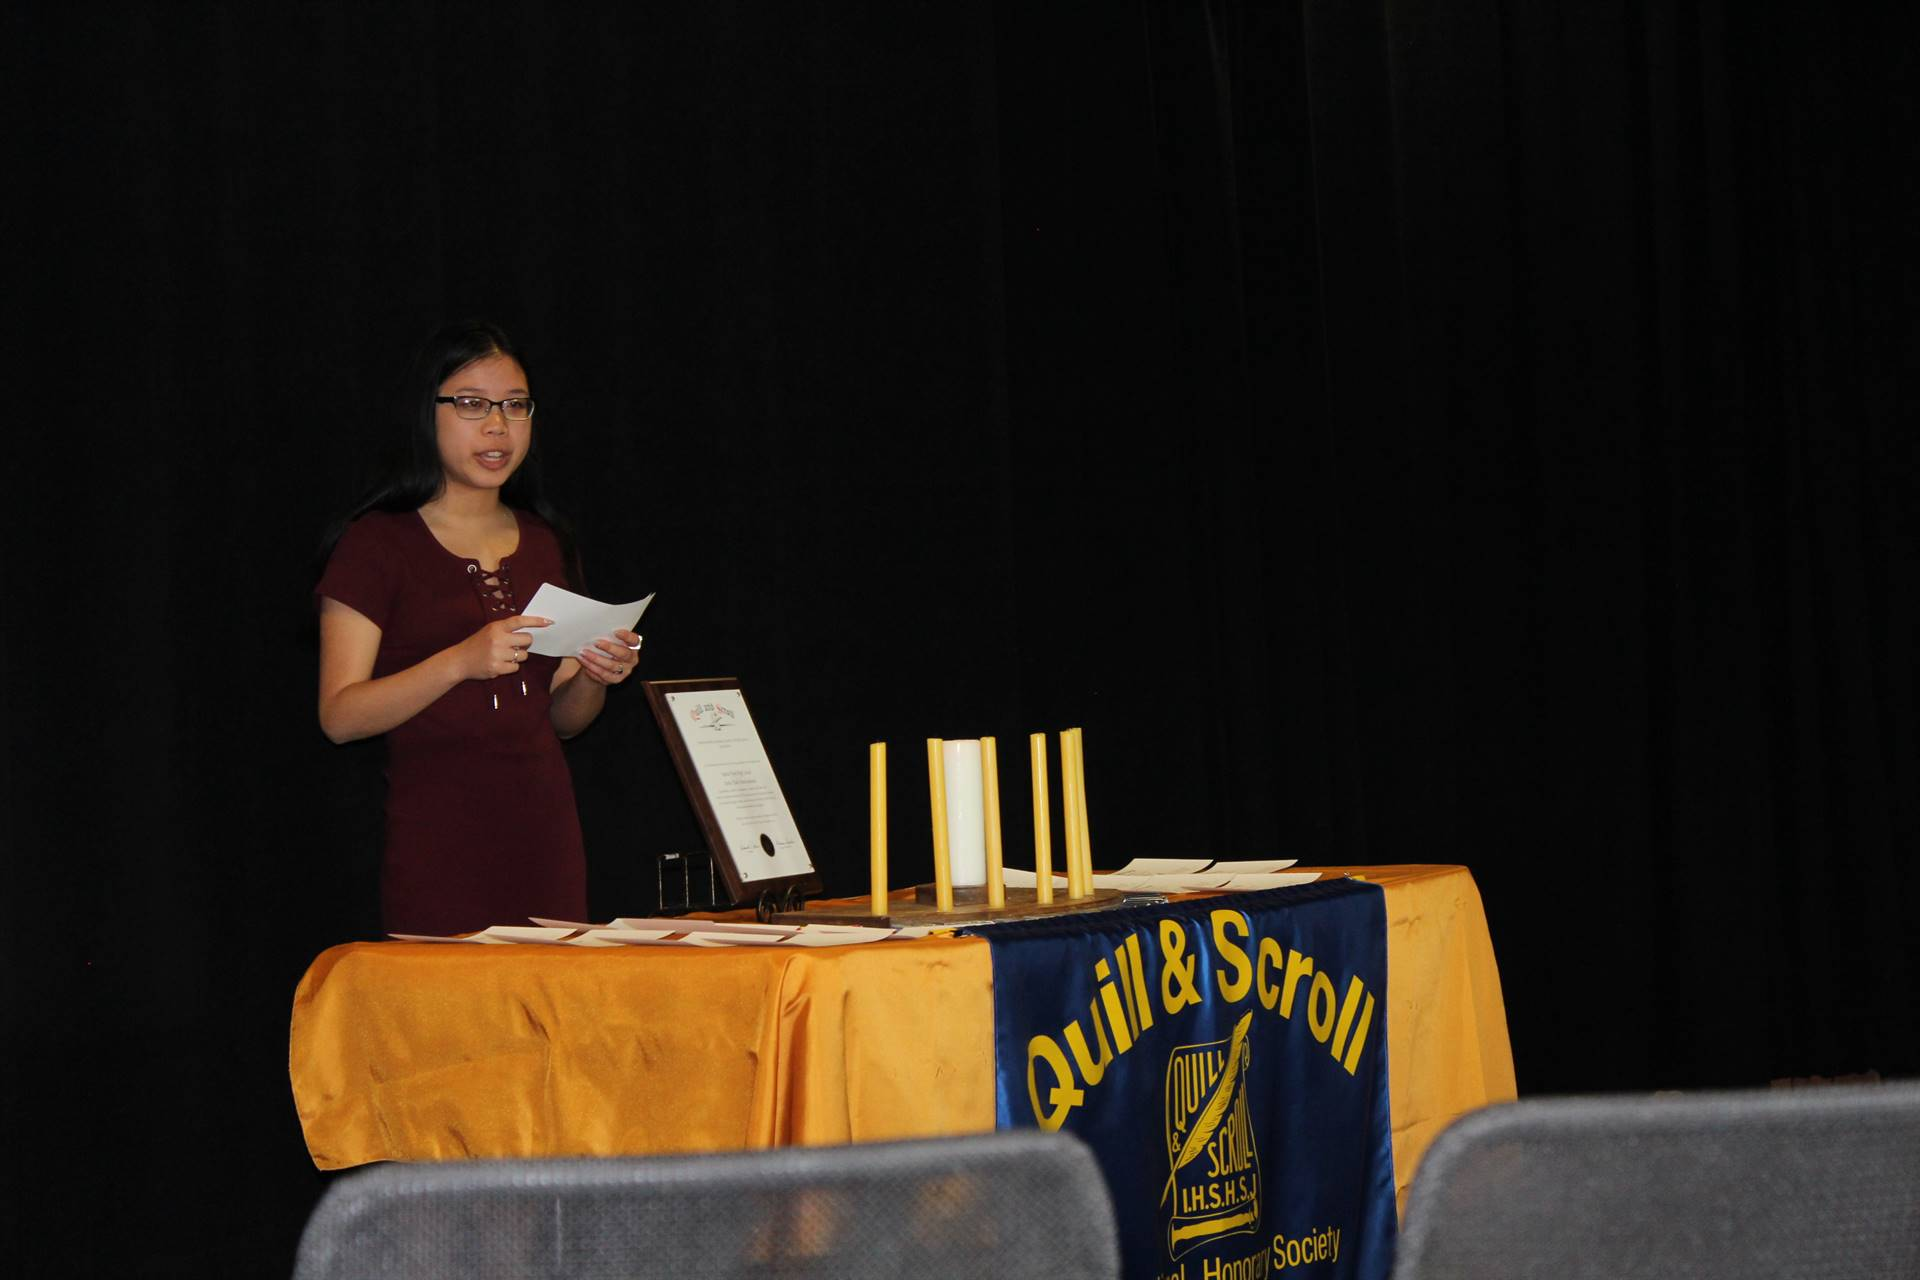 Student participating in the candle lighting ceremony